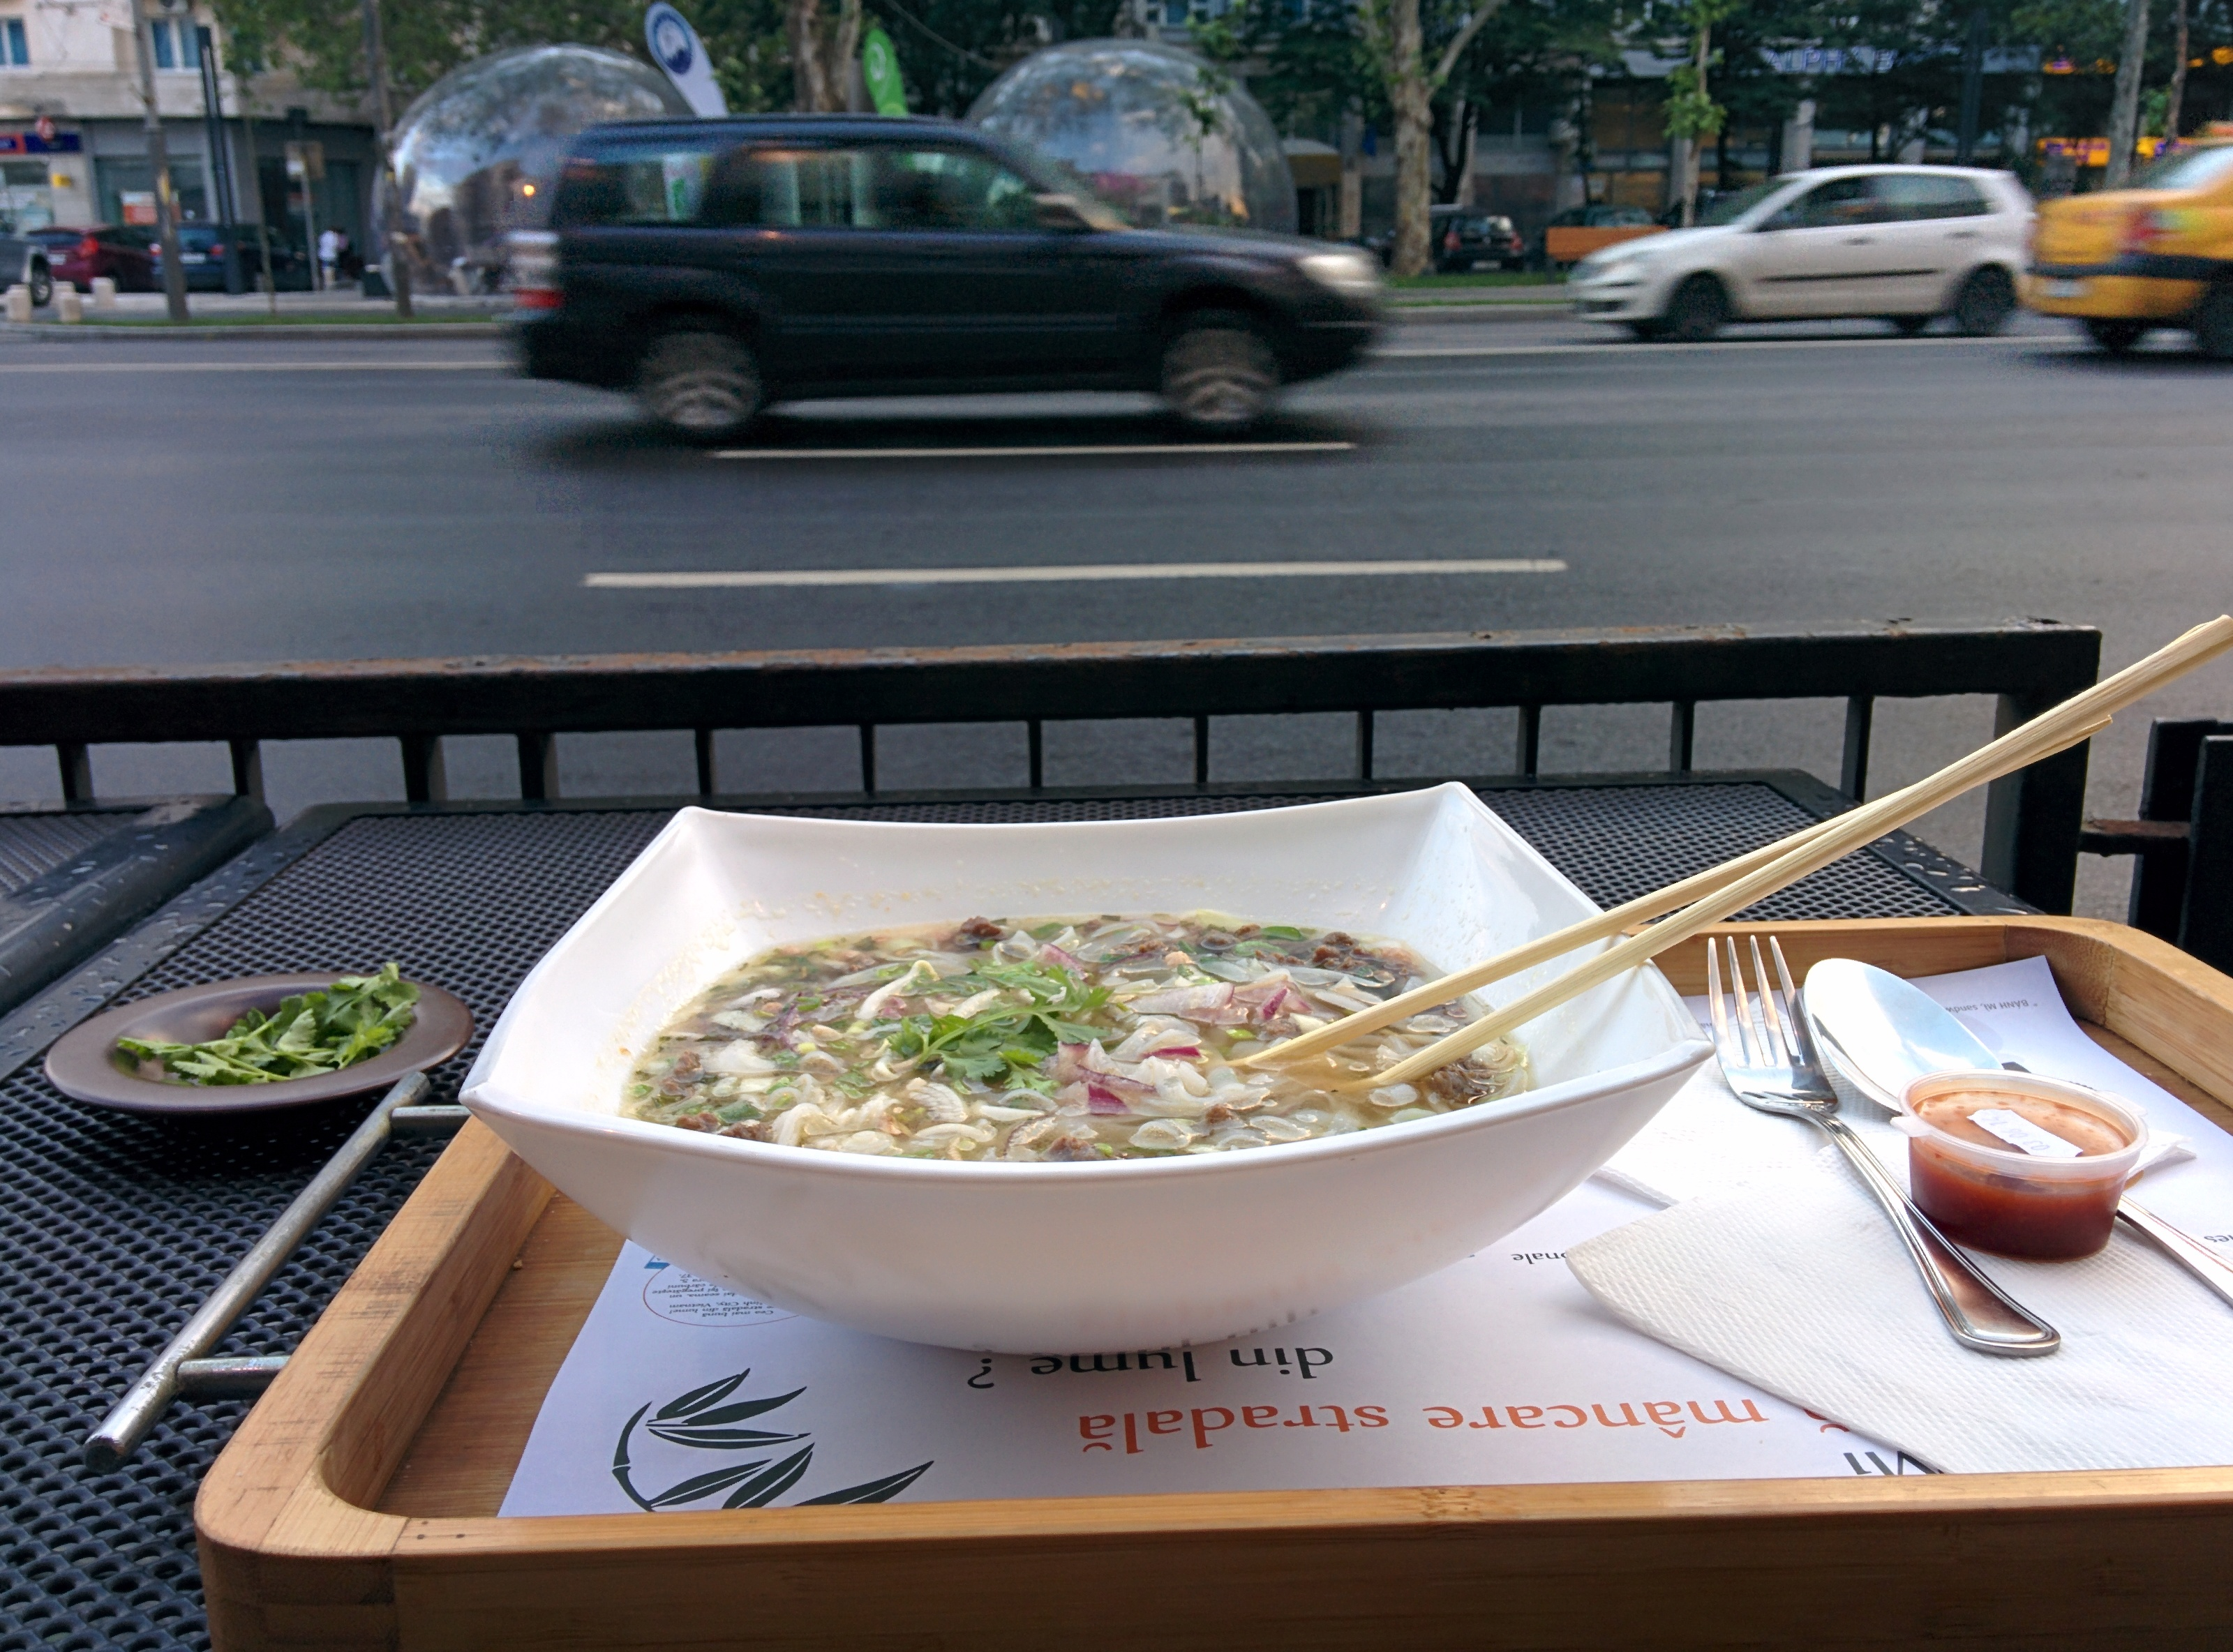 Phollow the Pho [ Pho bo tasting in 4 European cities